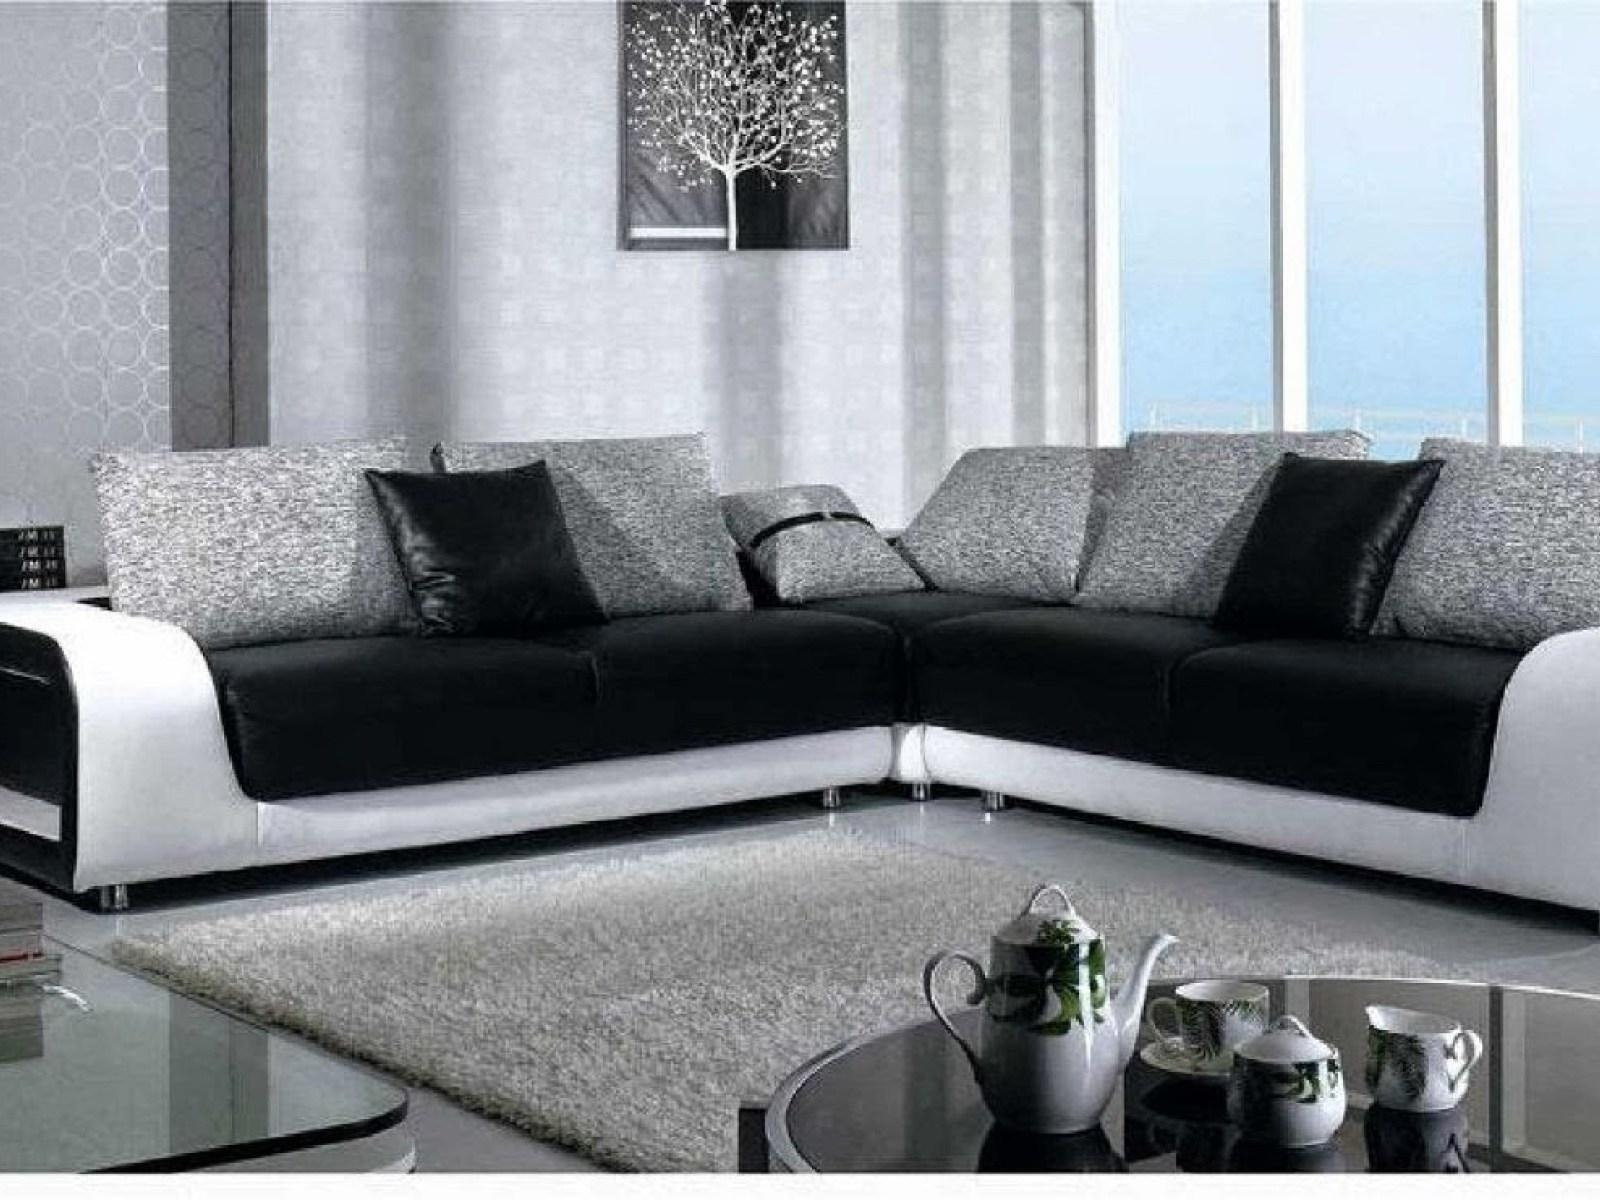 ▻ Sofa : 14 Black Couch Black And White Couch With 89 Wonderful Intended For Black And White Sofas (View 13 of 20)